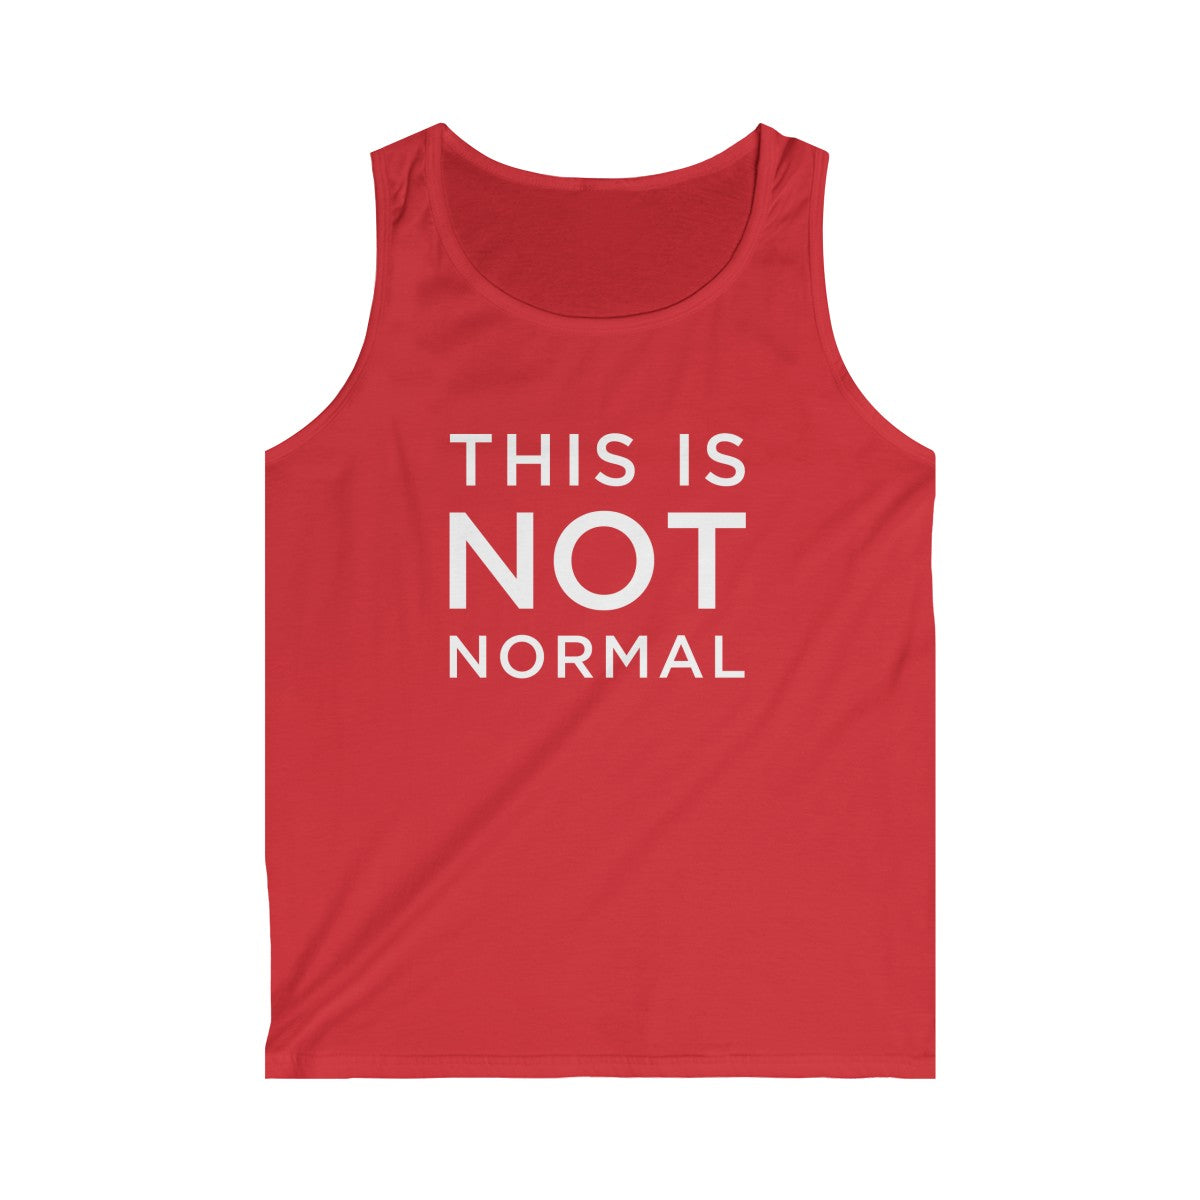 This is Not Normal Men's Softstyle Tank Top